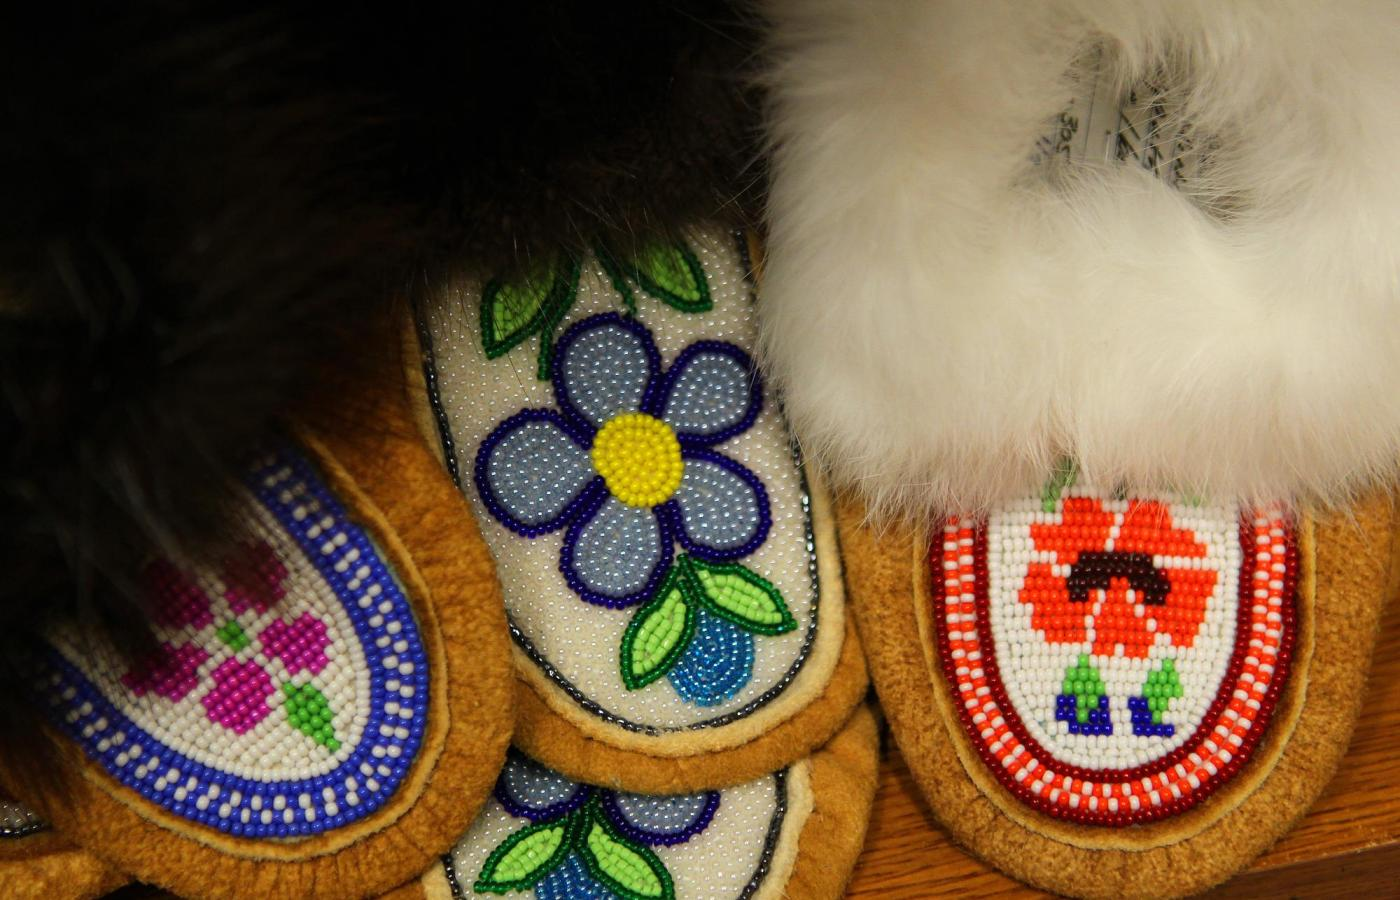 A stack of Dene style beaded moccasins depicting local flowers